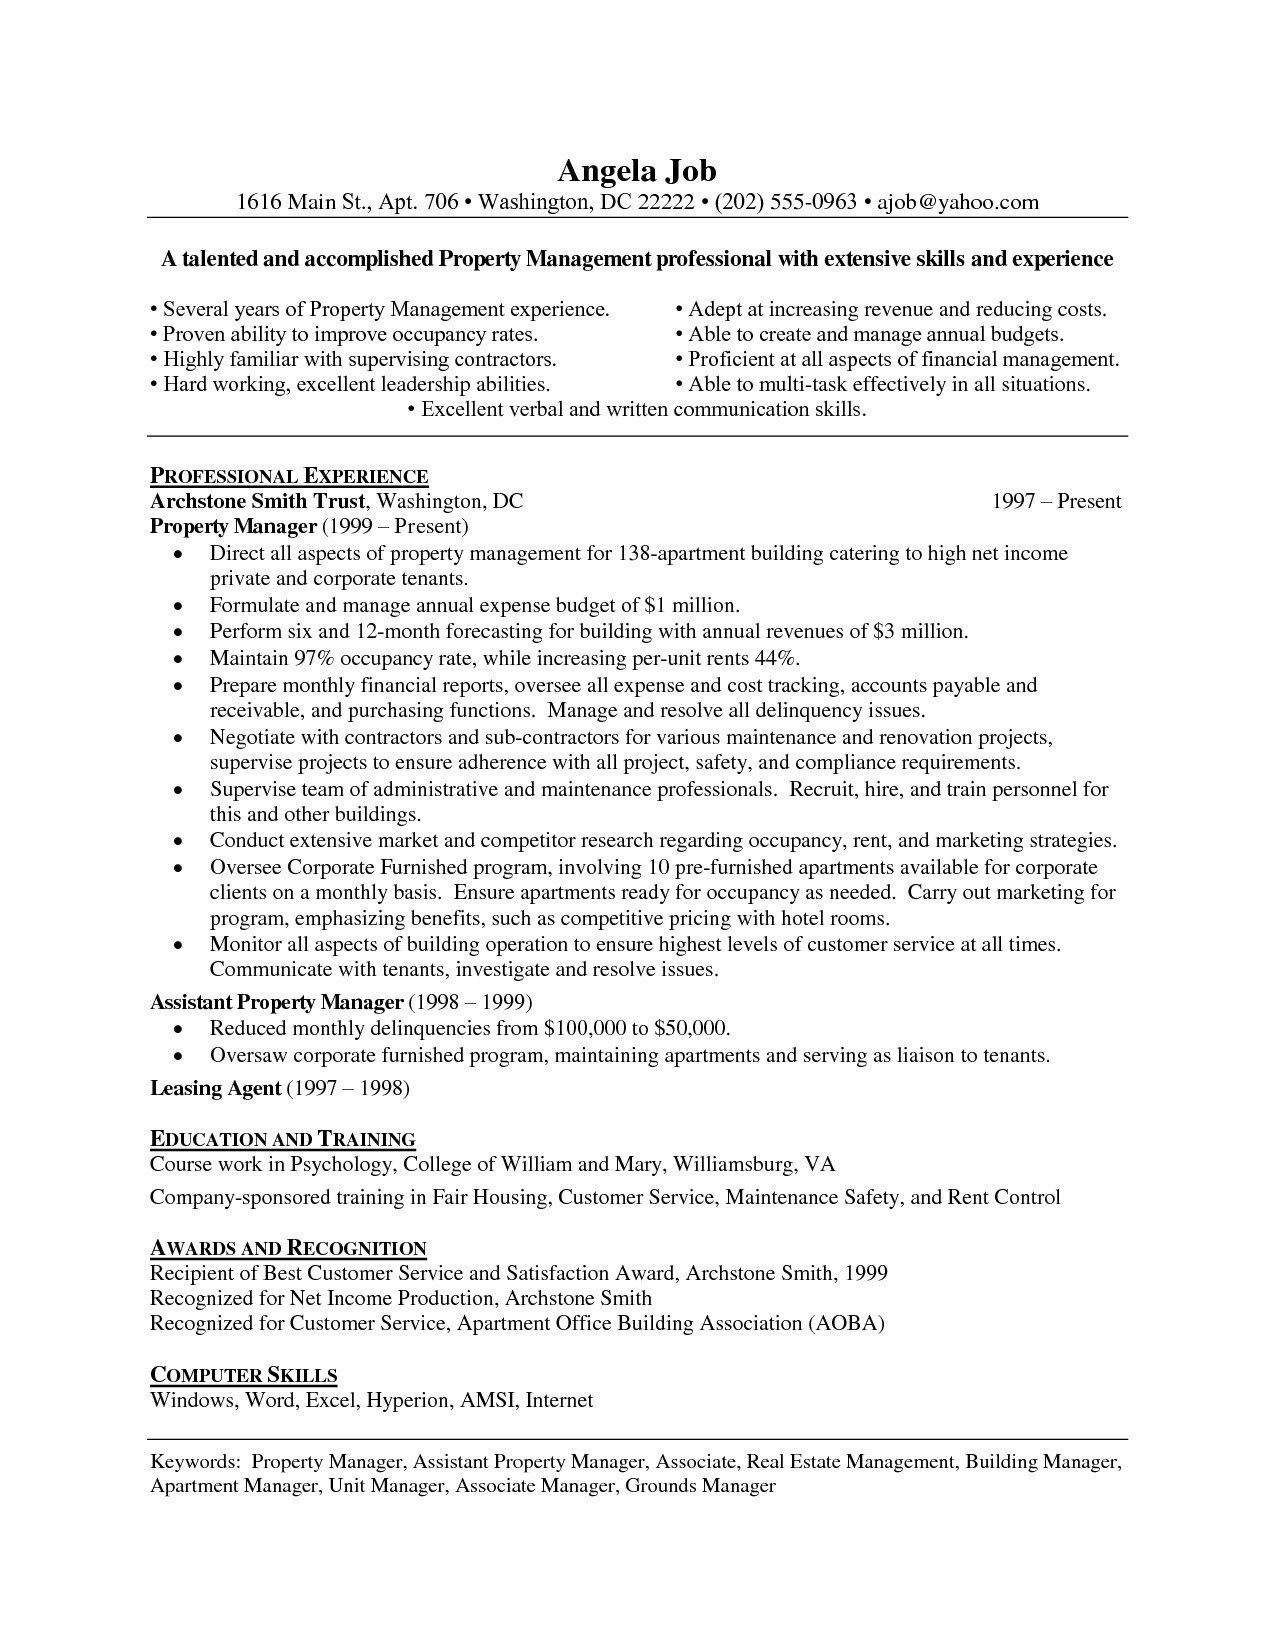 Tips To Write A Stunning Property Manager Resume Resume Skills Manager Resume Property Management